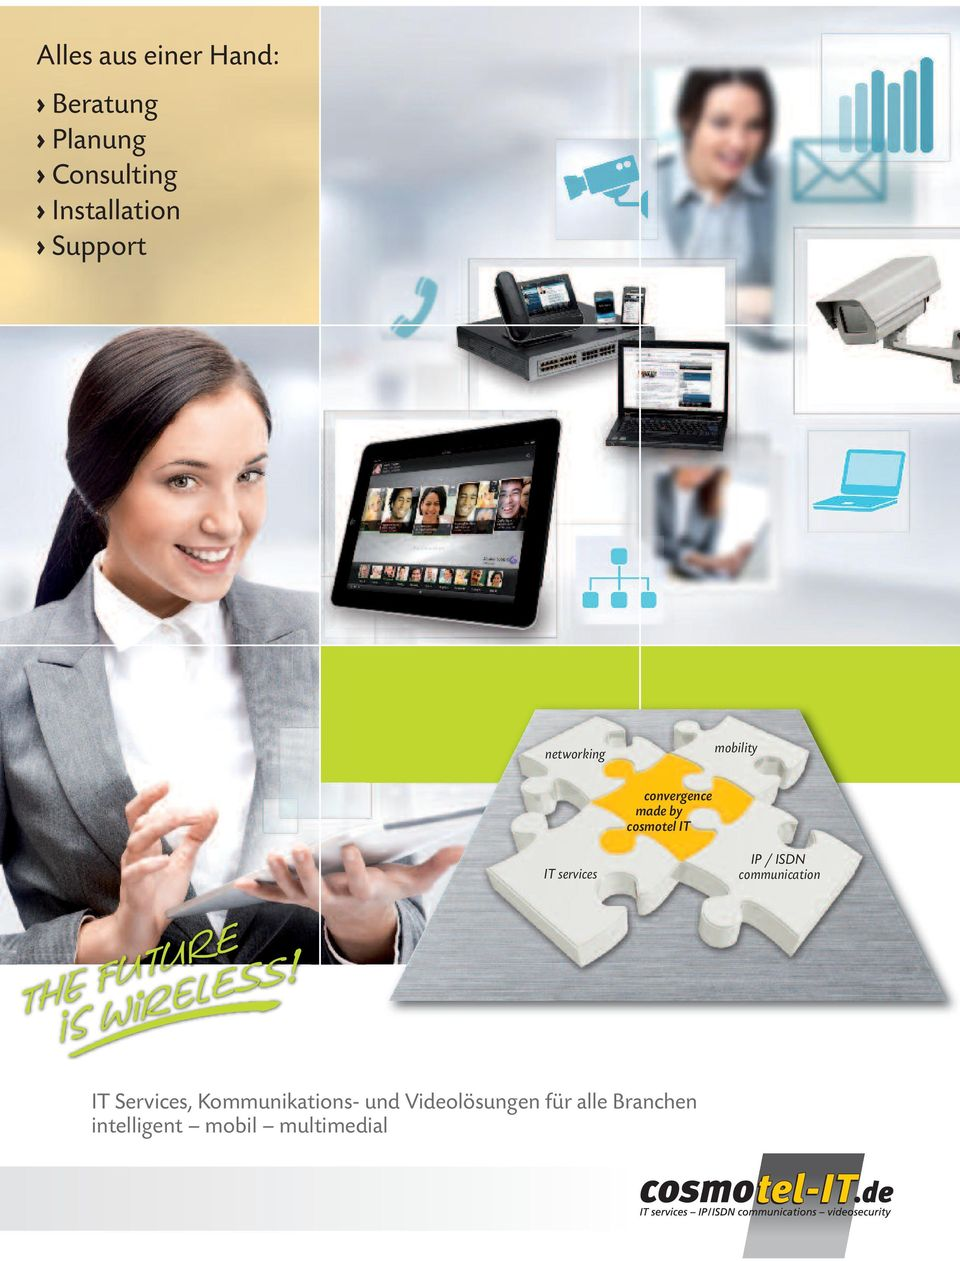 services IP / ISDN communication IT Services, Kommunikations-